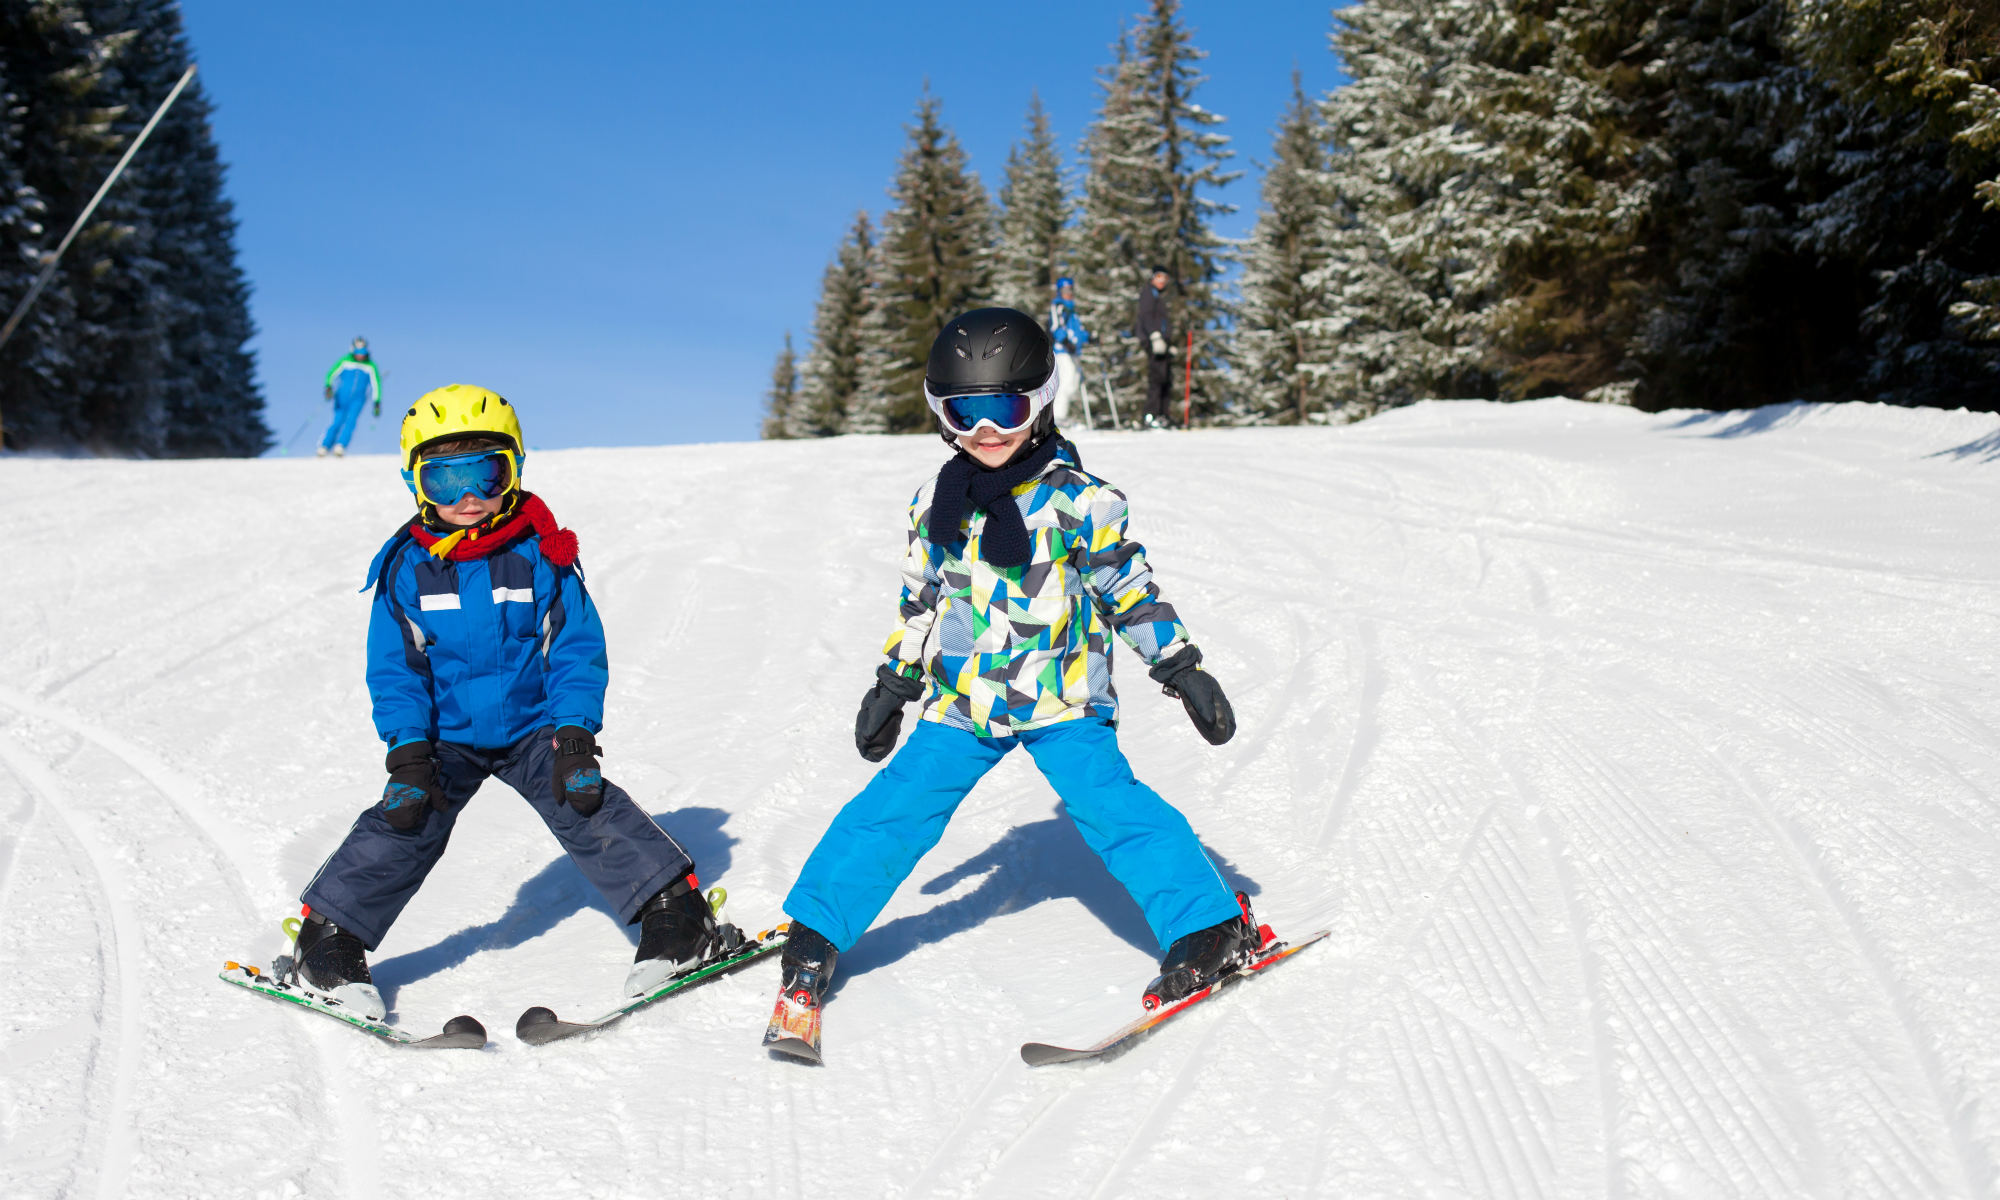 What should I pay attention to when taking my children skiing